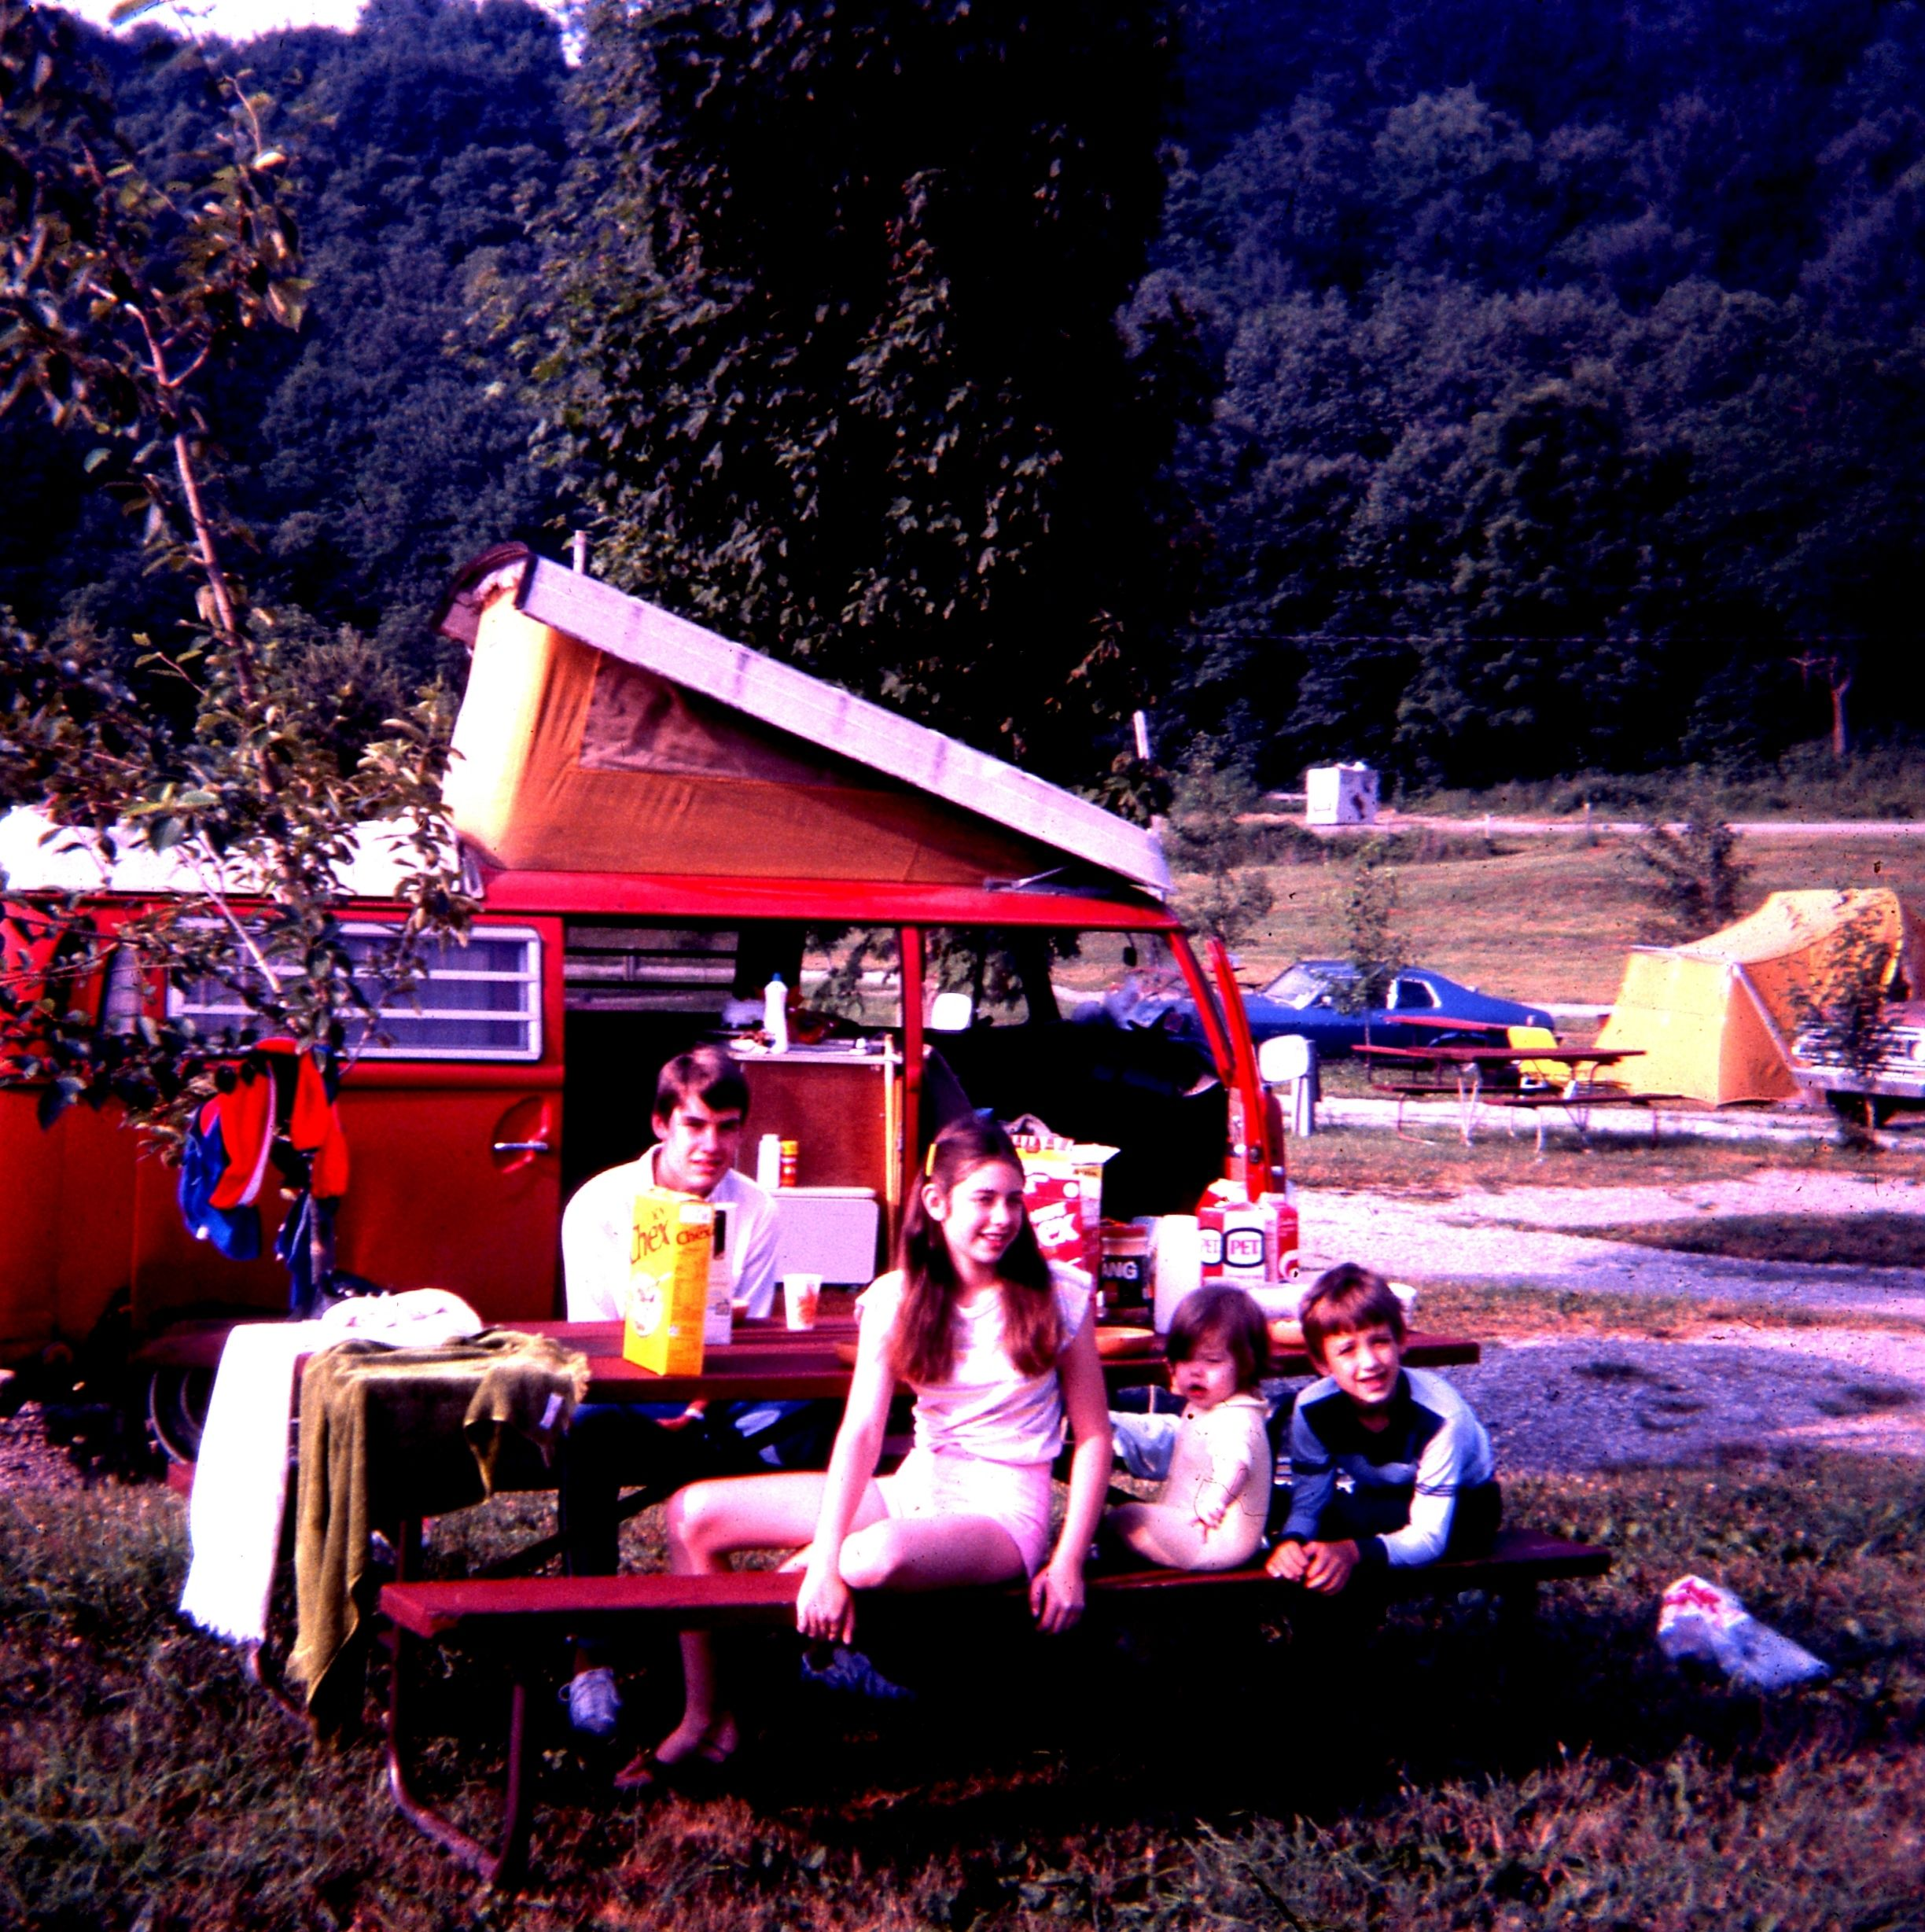 My four children having breakfast in front of our VW camper on our two month camping trip from New Orleans to Newfoundland.